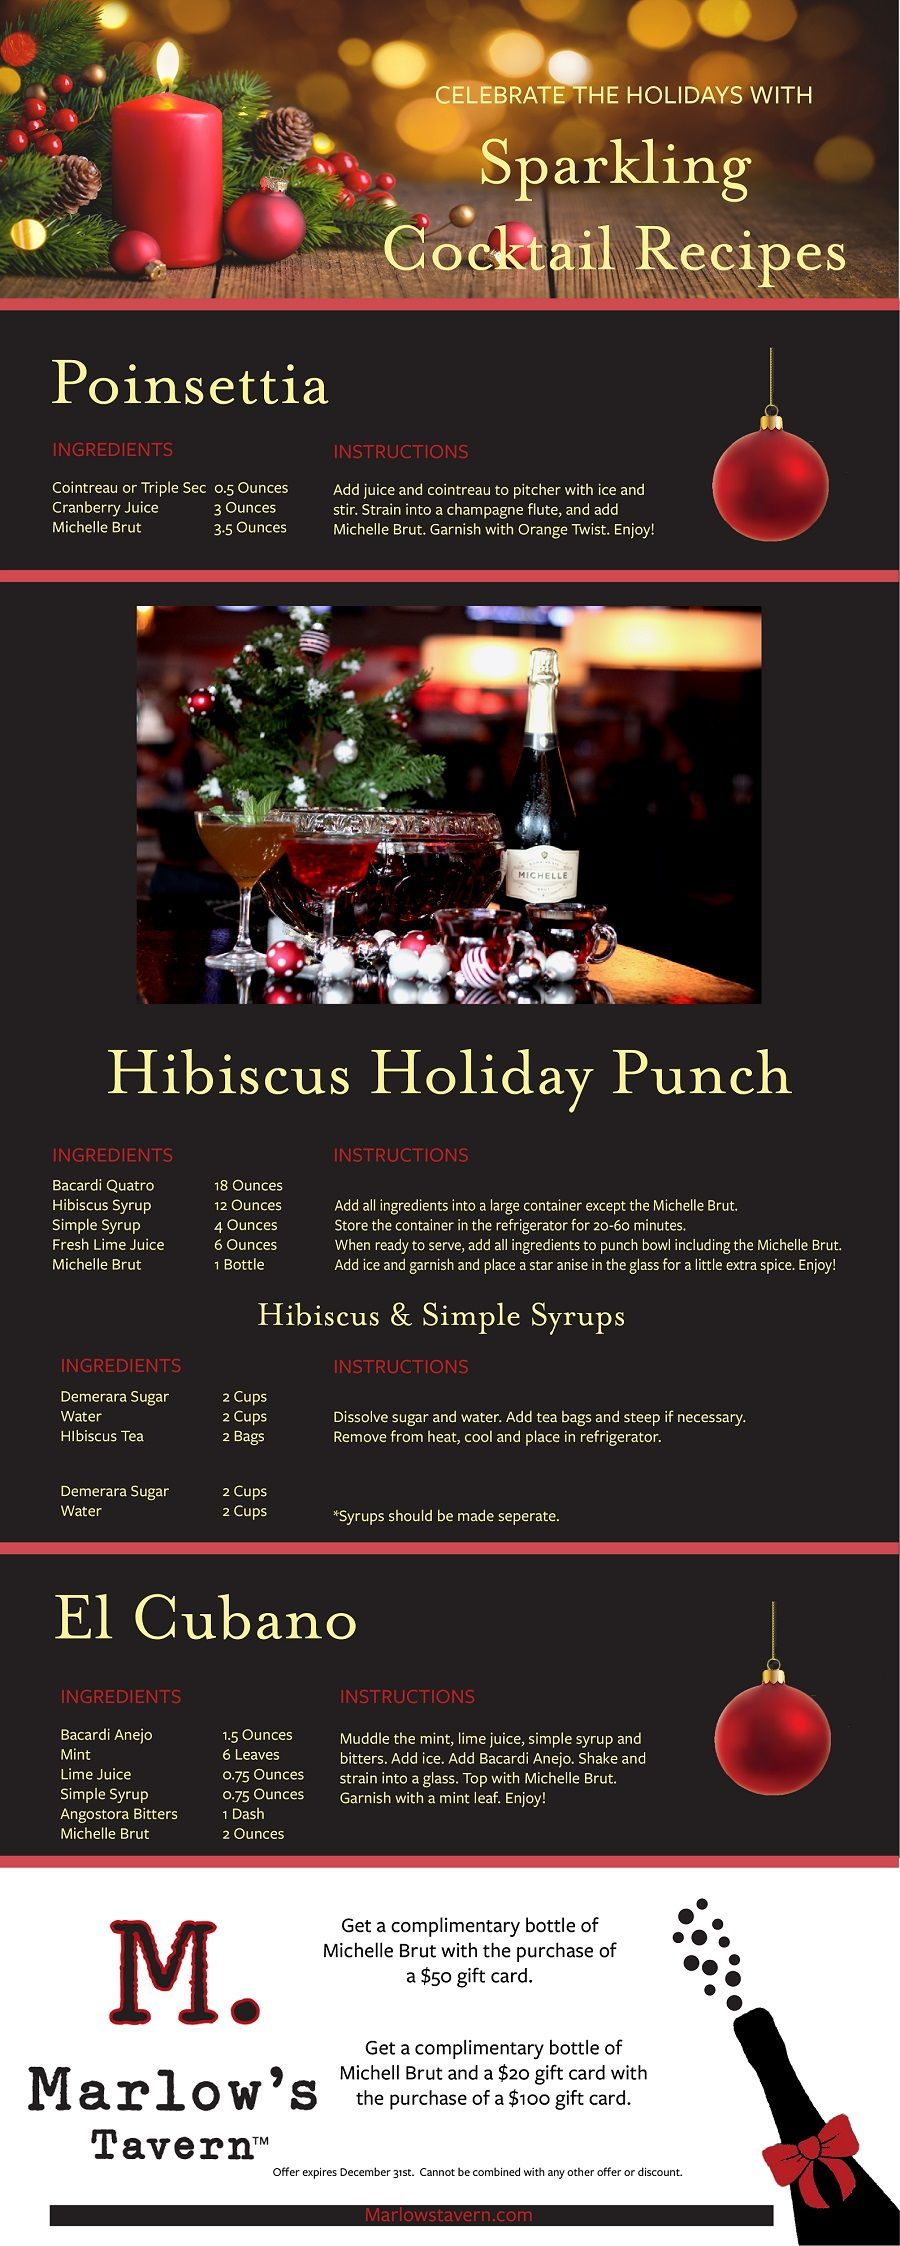 Holiday Sparkling Cocktail Recipes